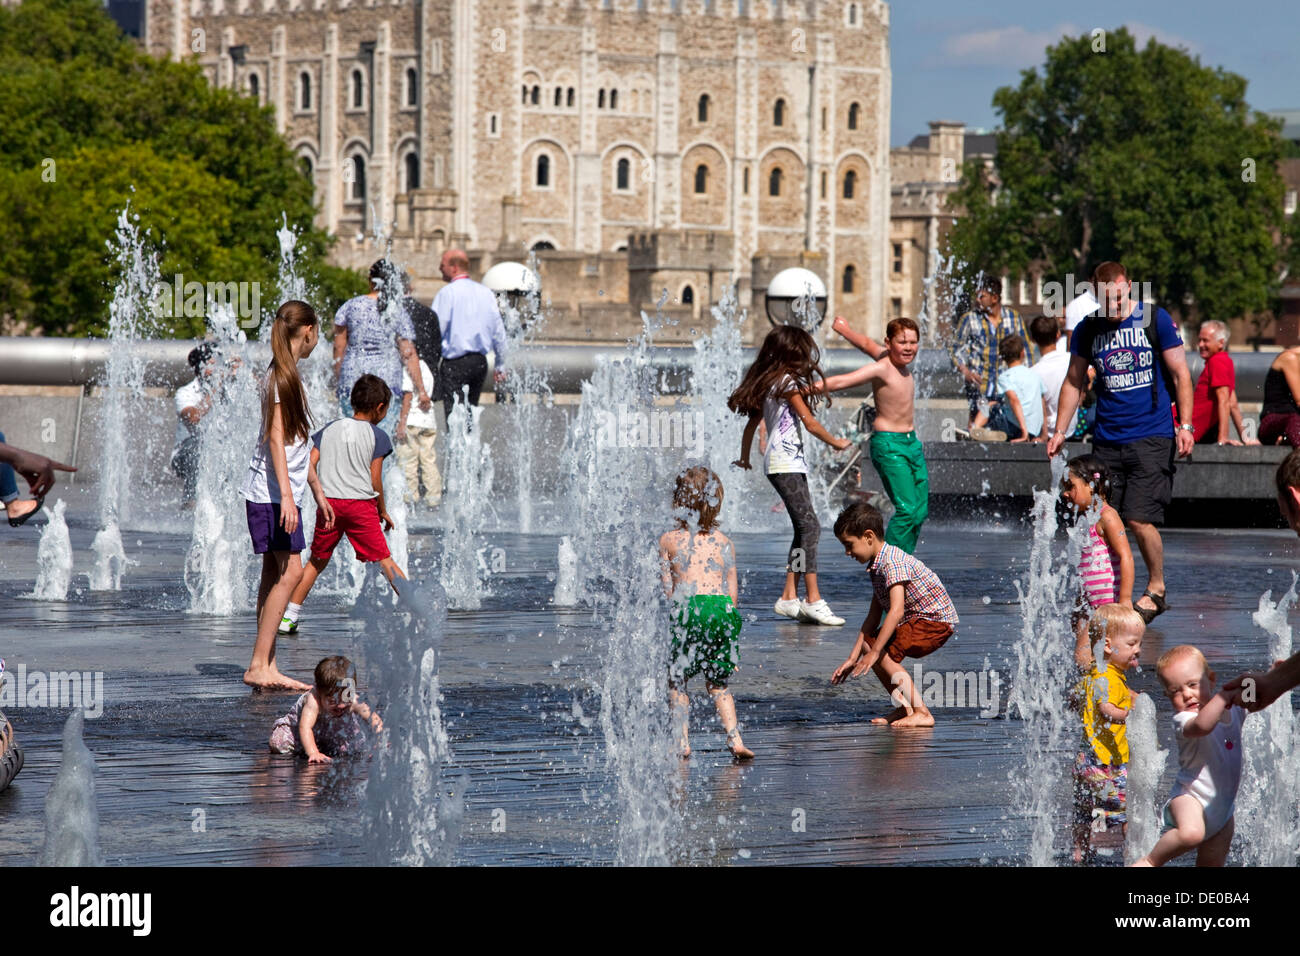 Children Playing In The Fountains Near The Tower Of London